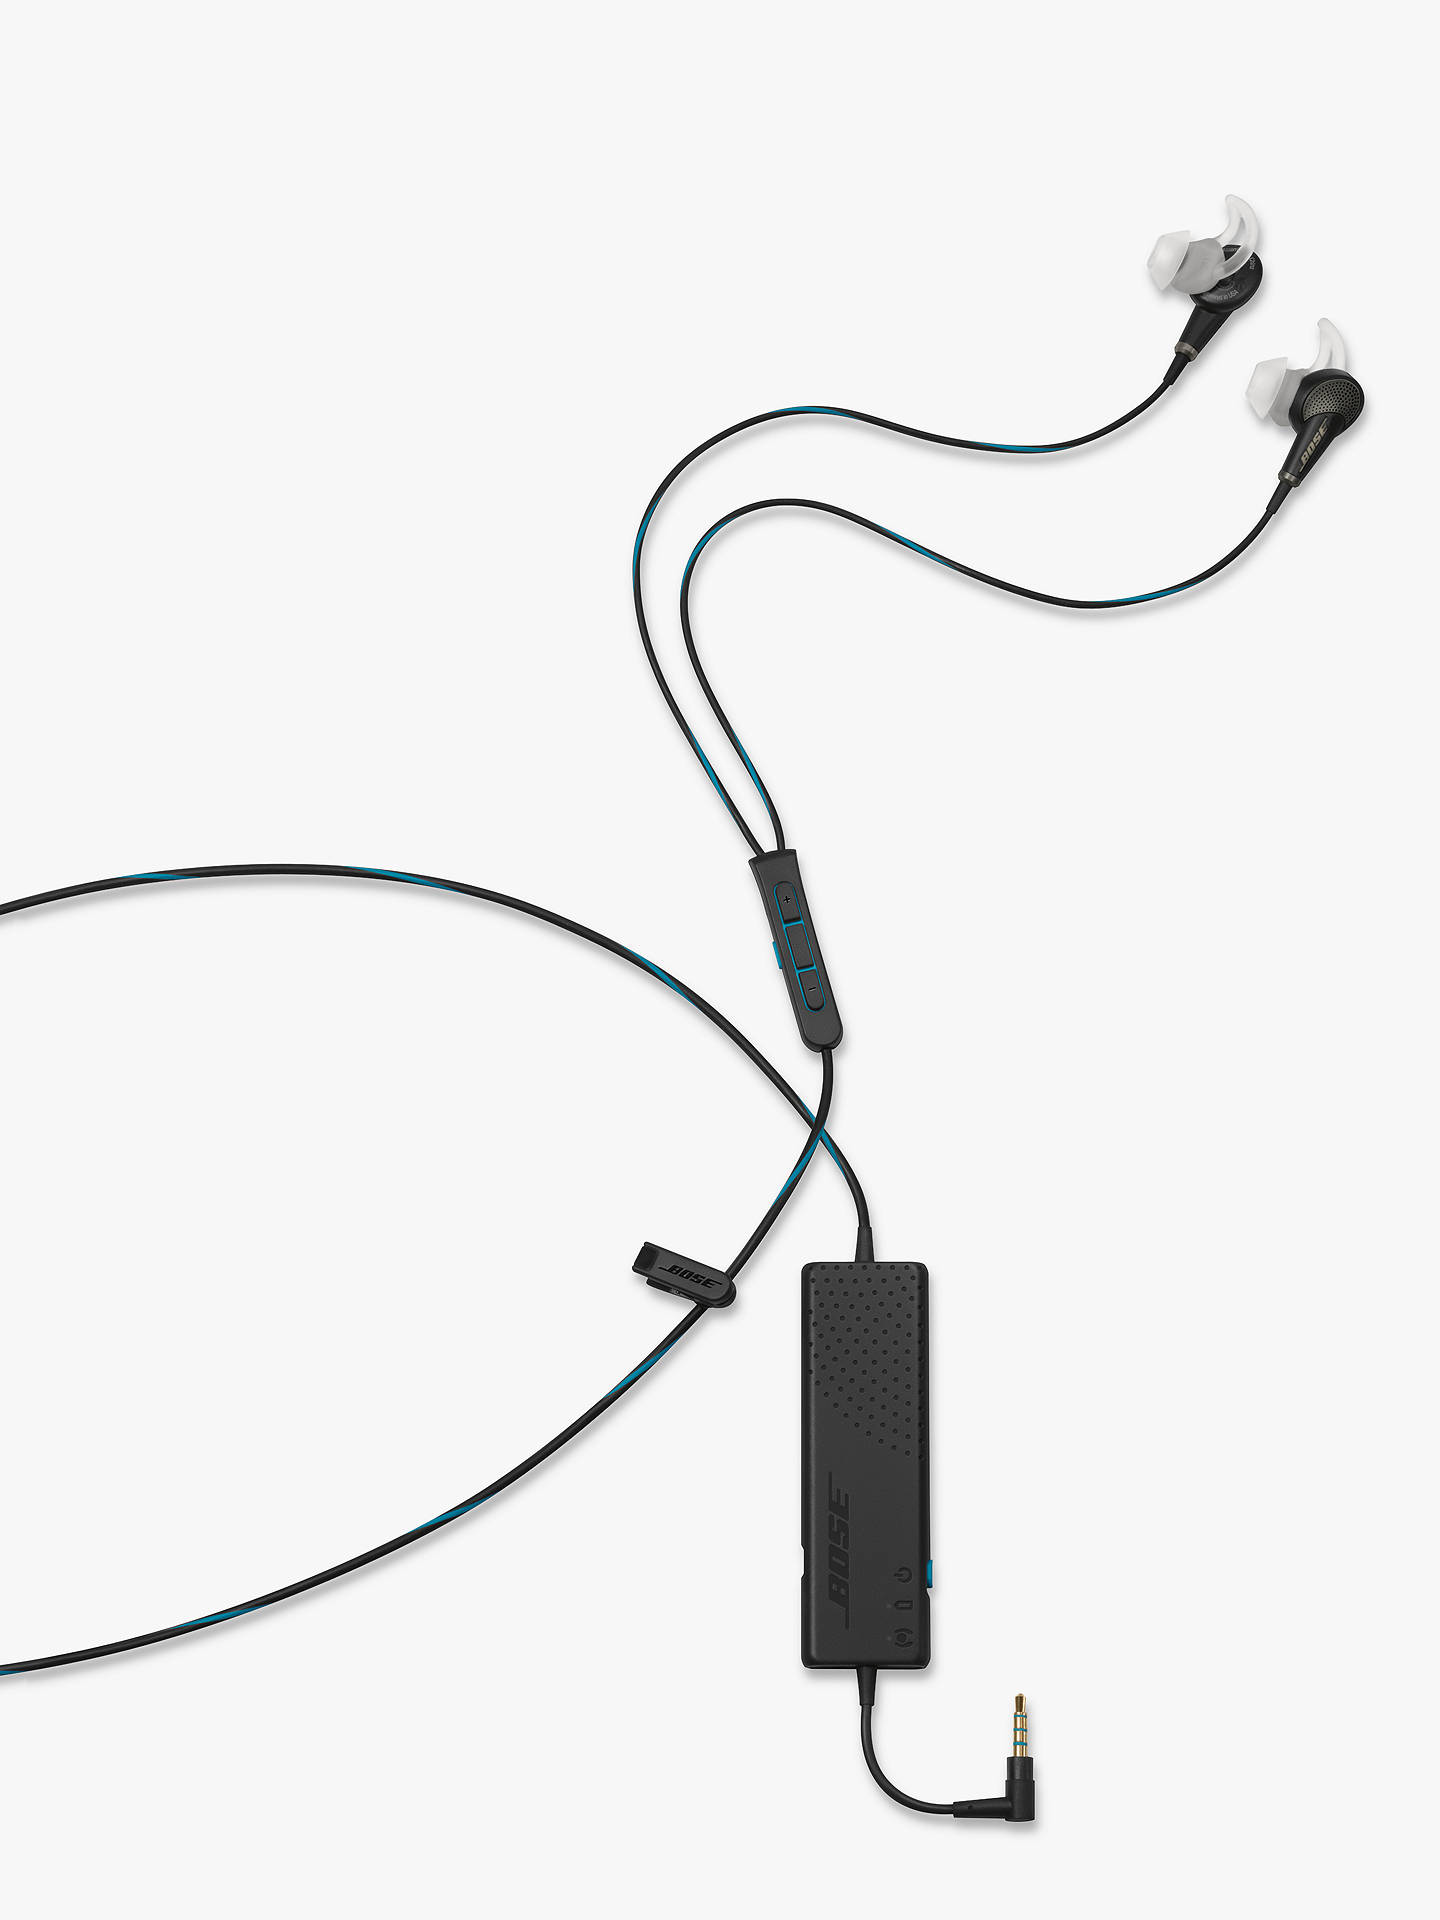 Buy Bose® QuietComfort® Noise Cancelling® QC20 Acoustic In-Ear Headphones for iPad, iPhone and iPod, Black Online at johnlewis.com